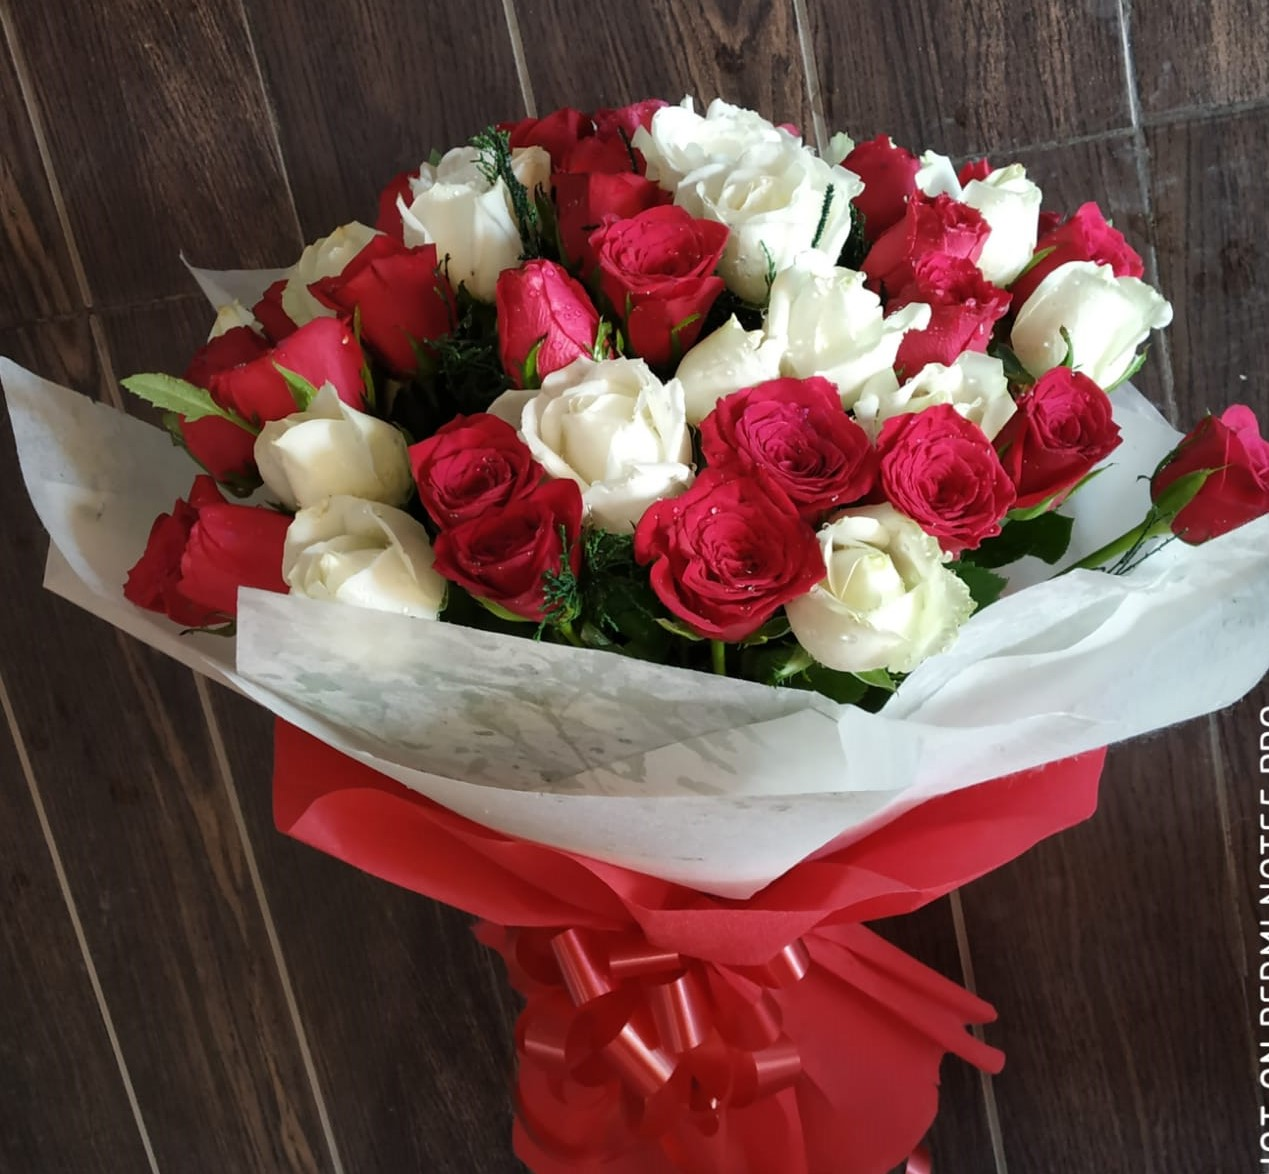 Flowers Delivery in Sector 44 GurgaonRed & White Roses in Duble Layer Packing